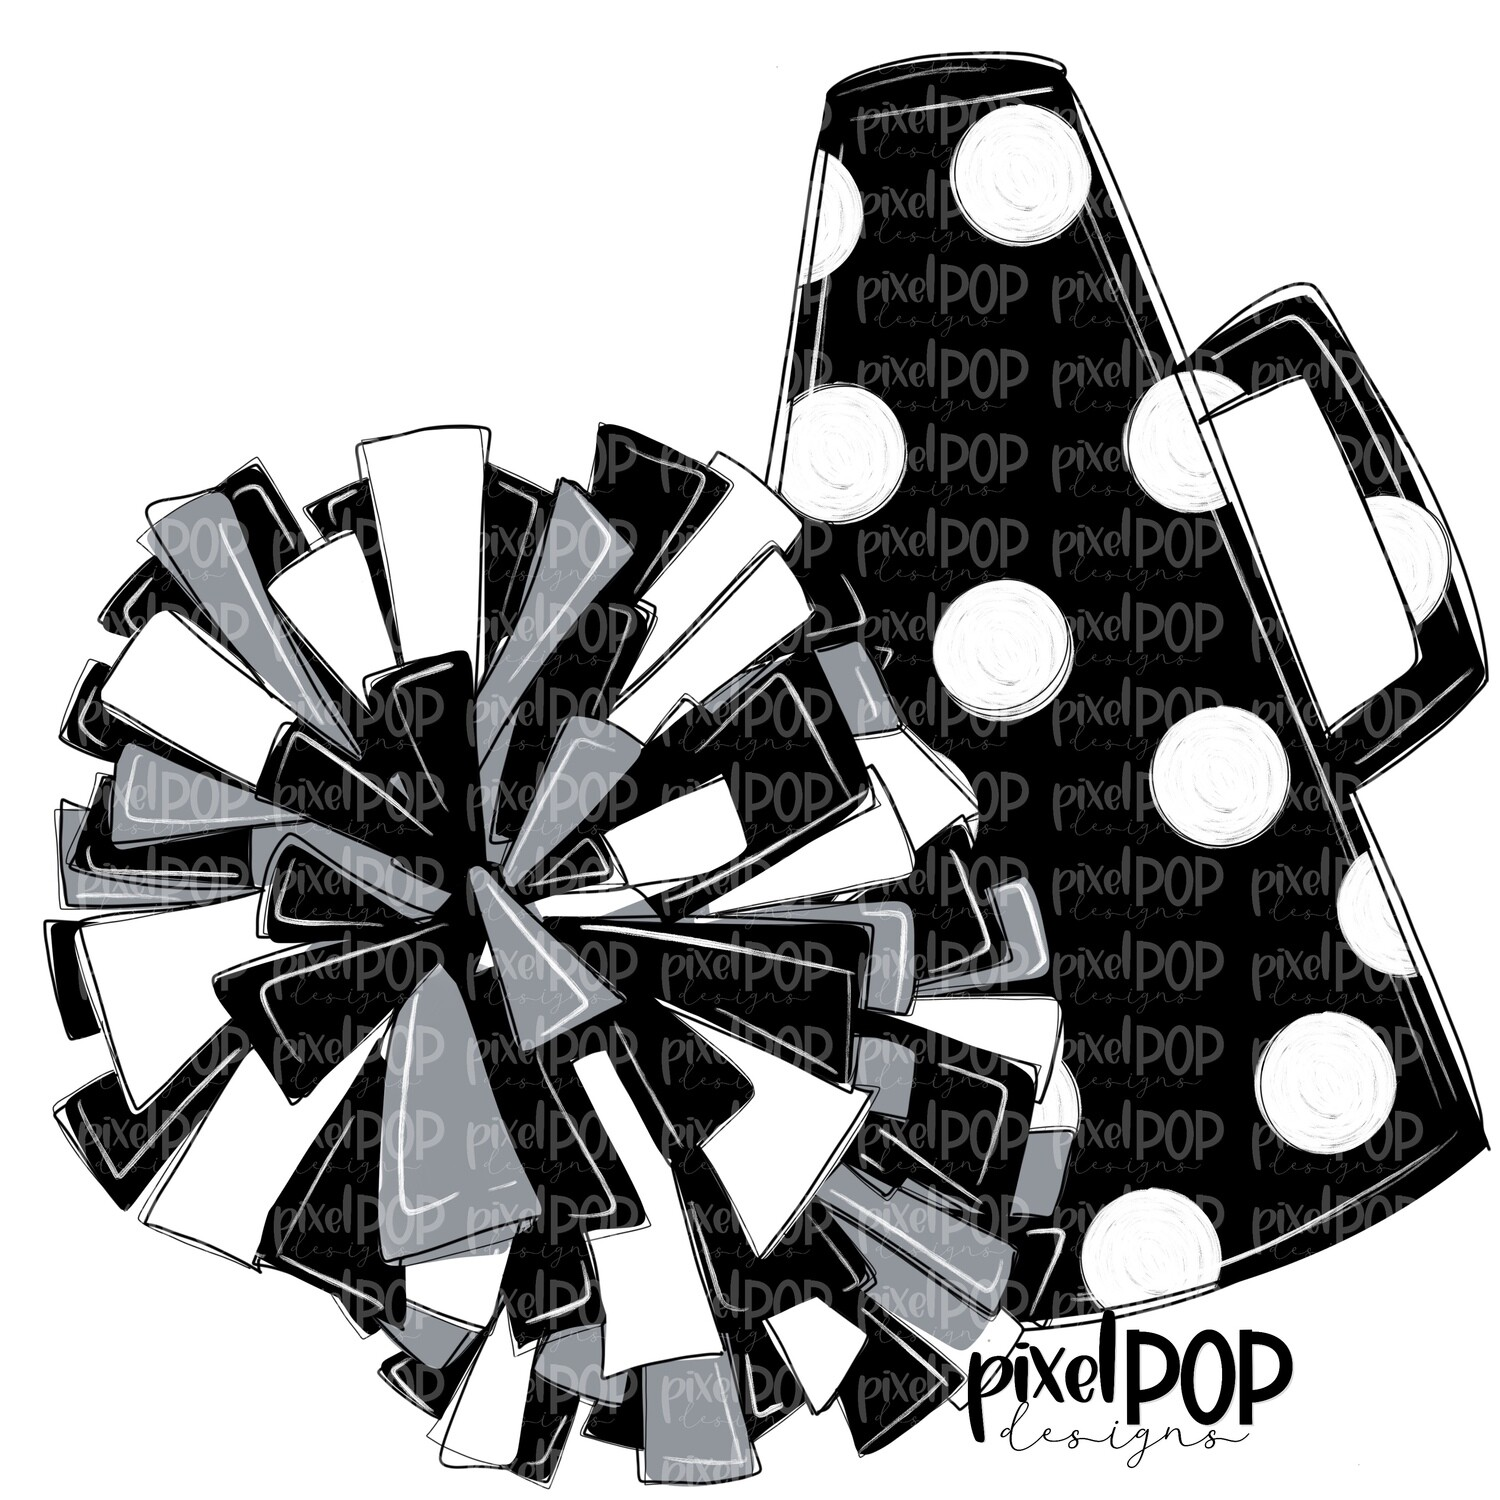 Cheerleading Megaphone and Poms Black and Grey Silver PNG   Cheerleading   Cheer Design   Cheer Art   Cheer Blank   Sports Art